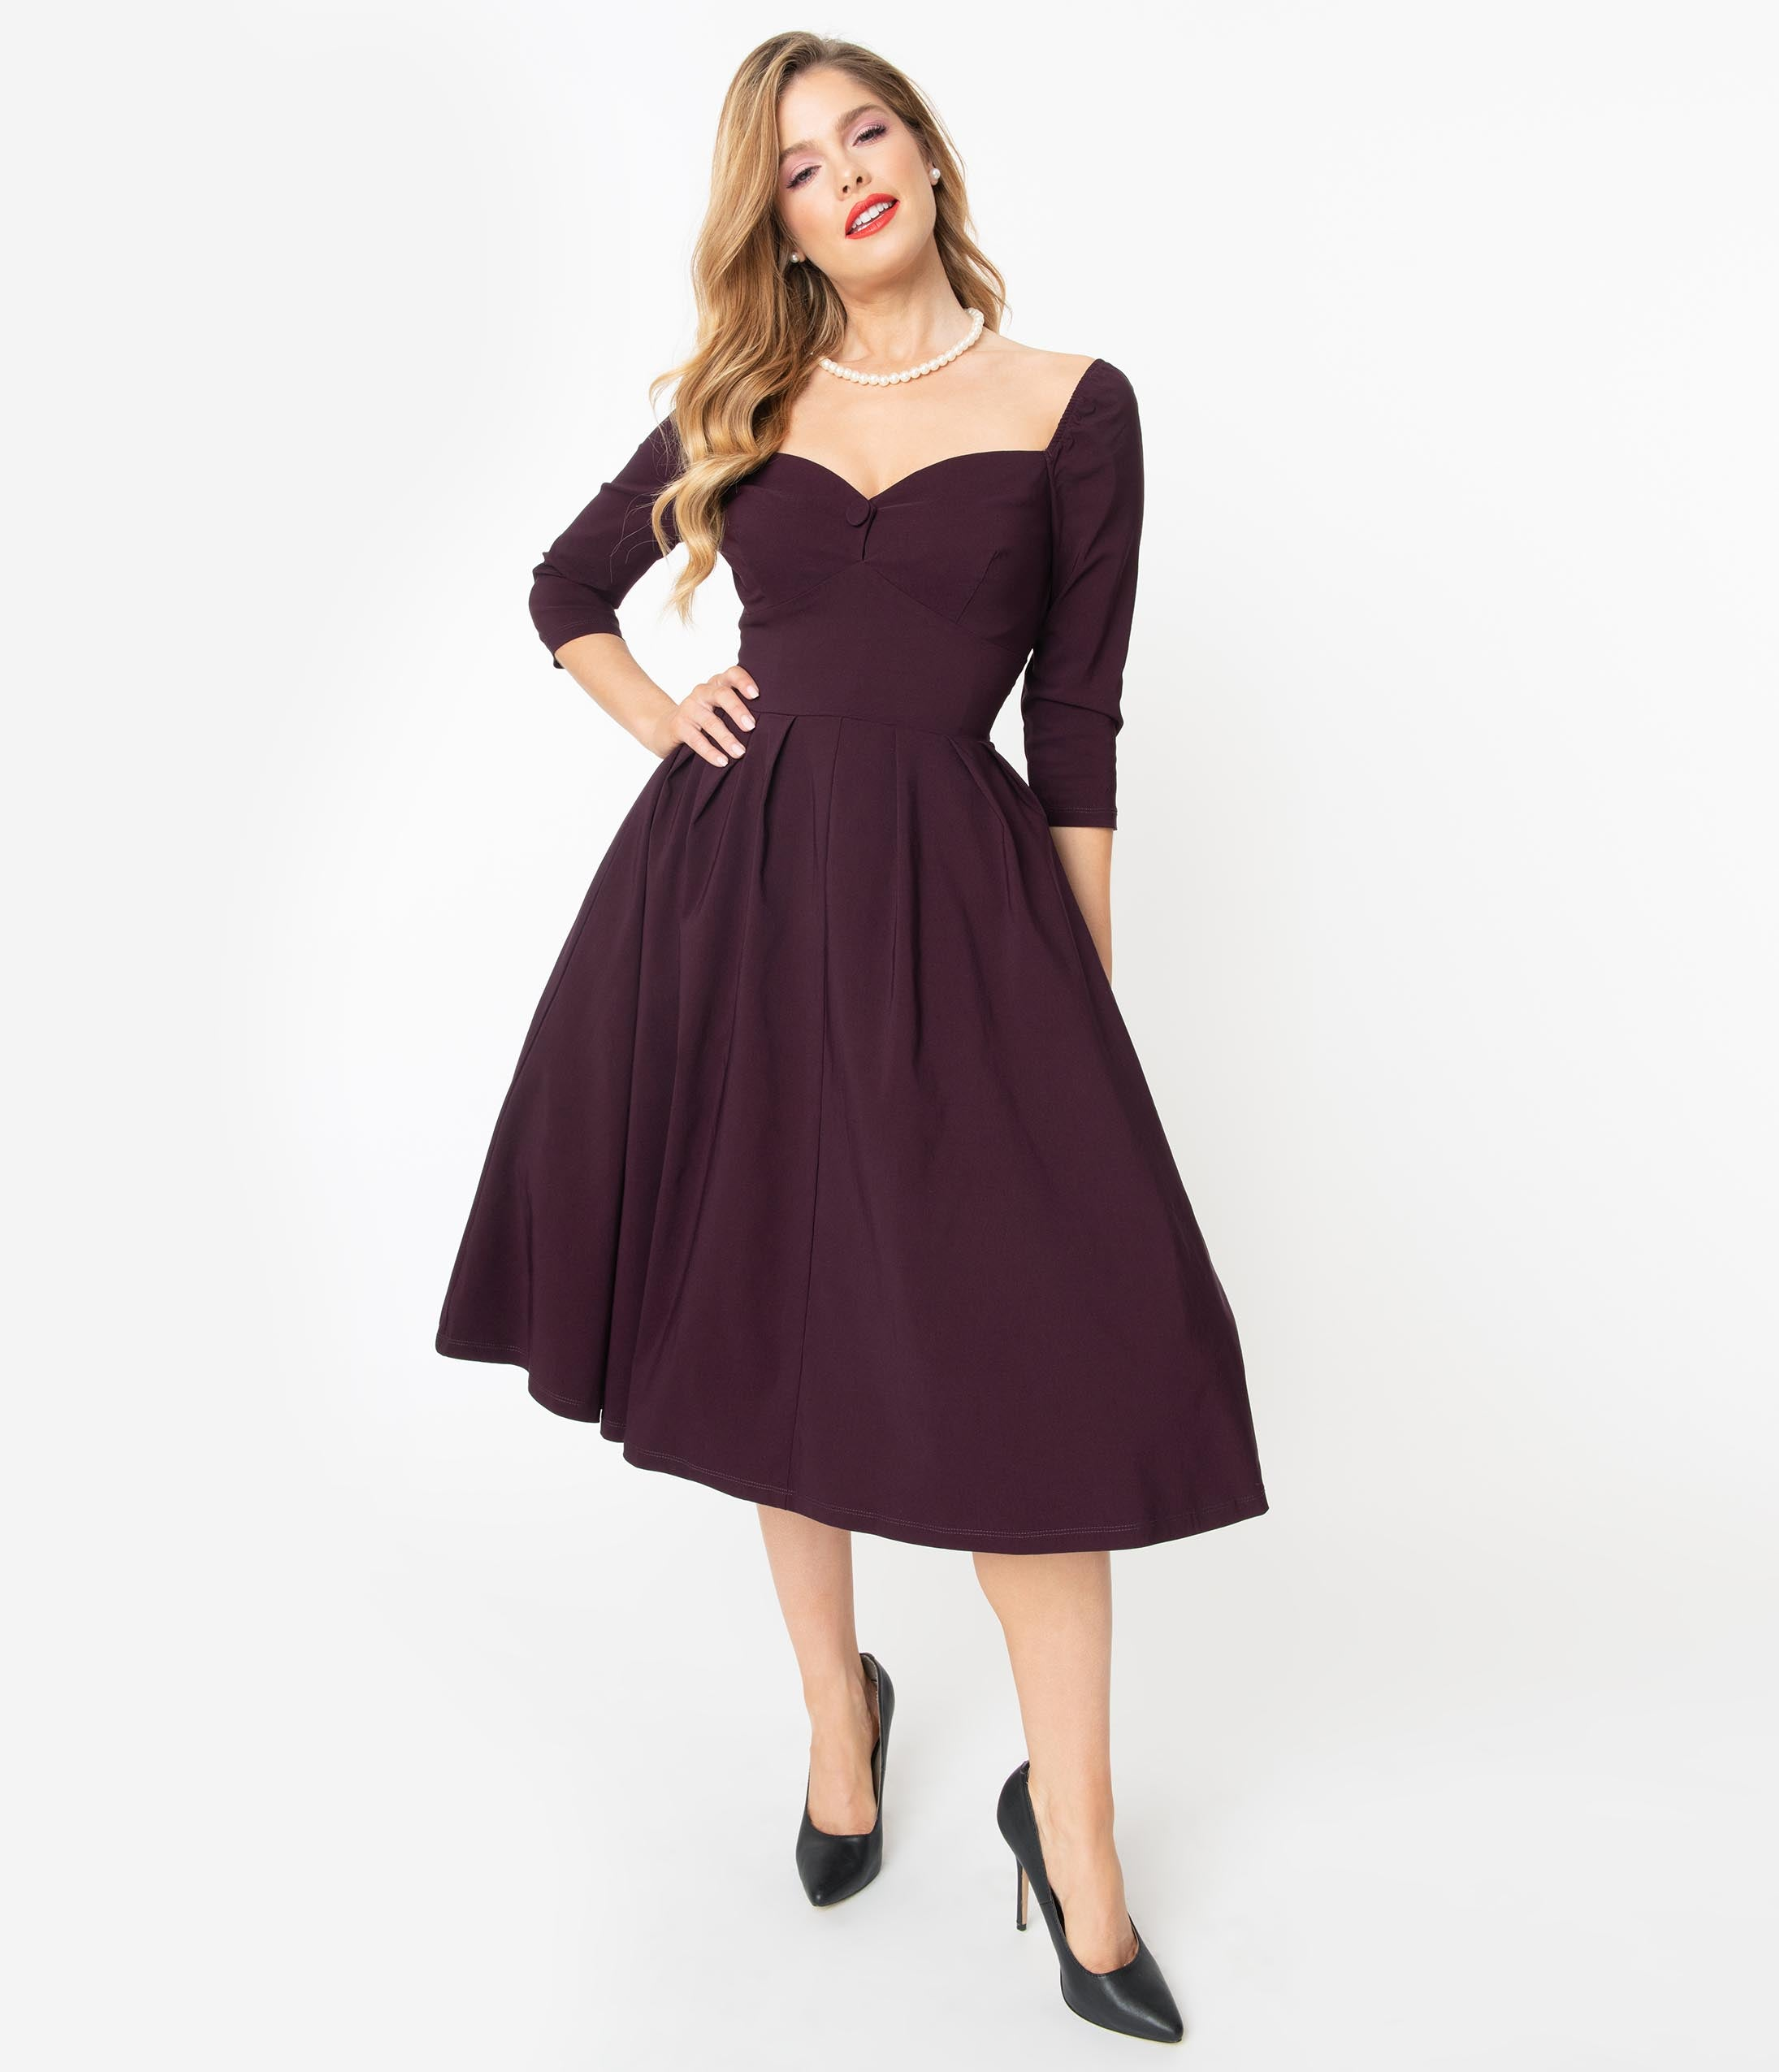 Vintage Style Dresses | Vintage Inspired Dresses Unique Vintage 1950S Style Eggplant Sweetheart Lamar Swing Dress $98.00 AT vintagedancer.com